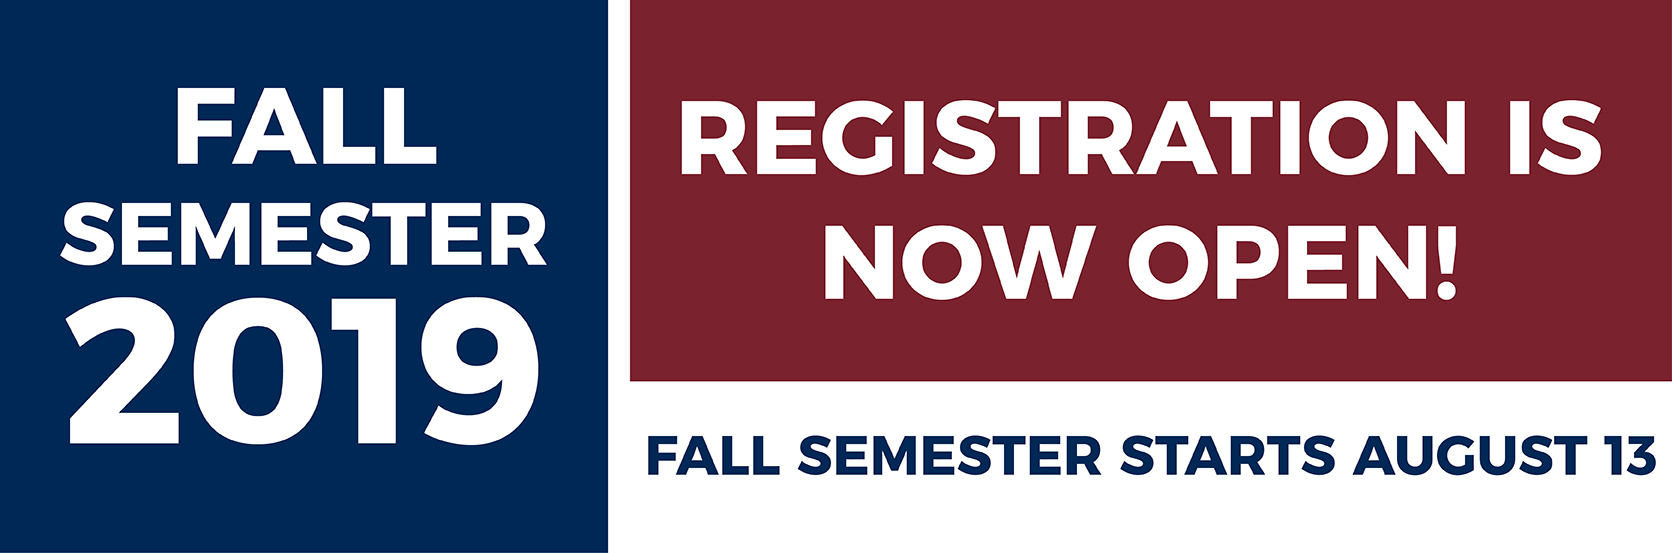 Registration for fall semester is now open. Fall Semester Starts August 13